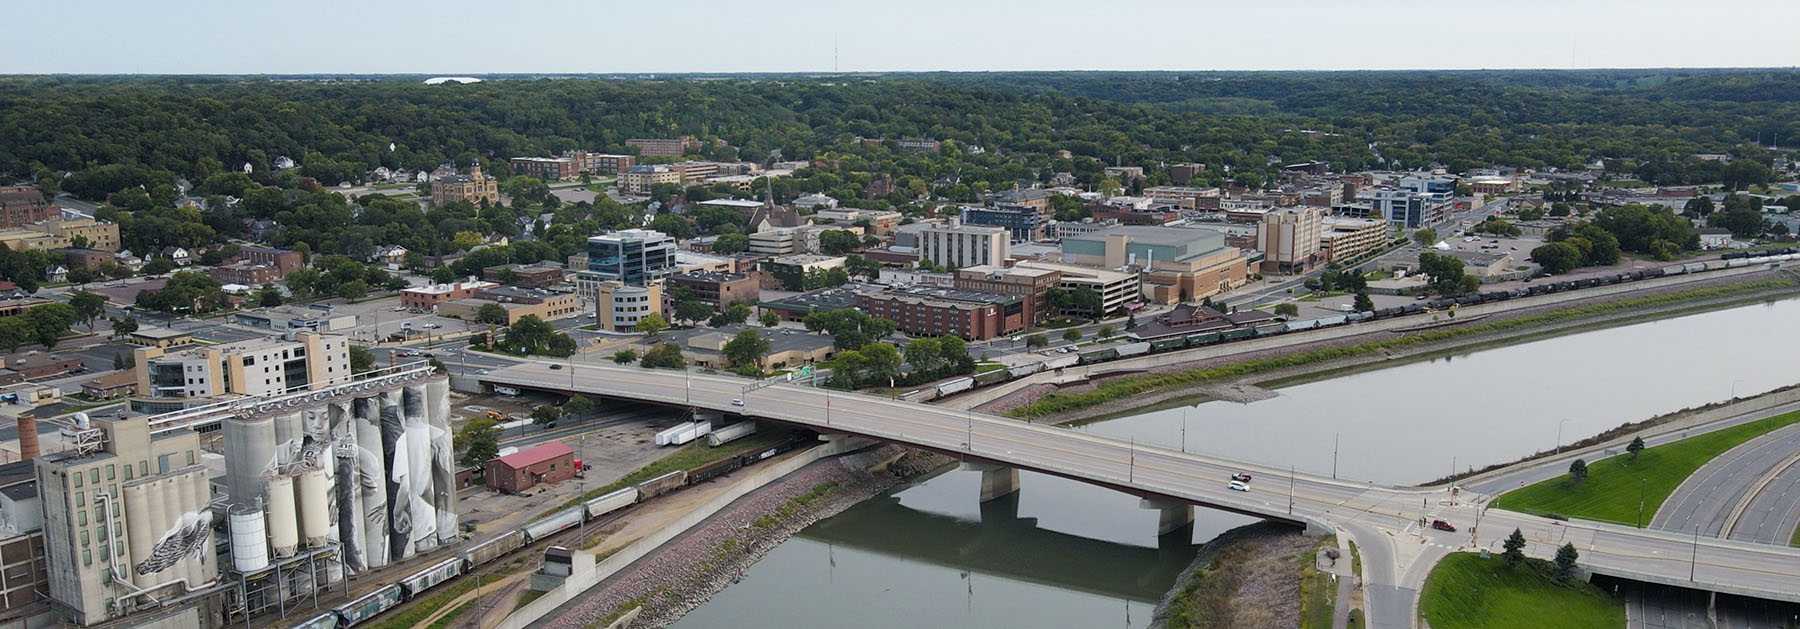 arial photo of downtown Mankato across the river from North Mankato